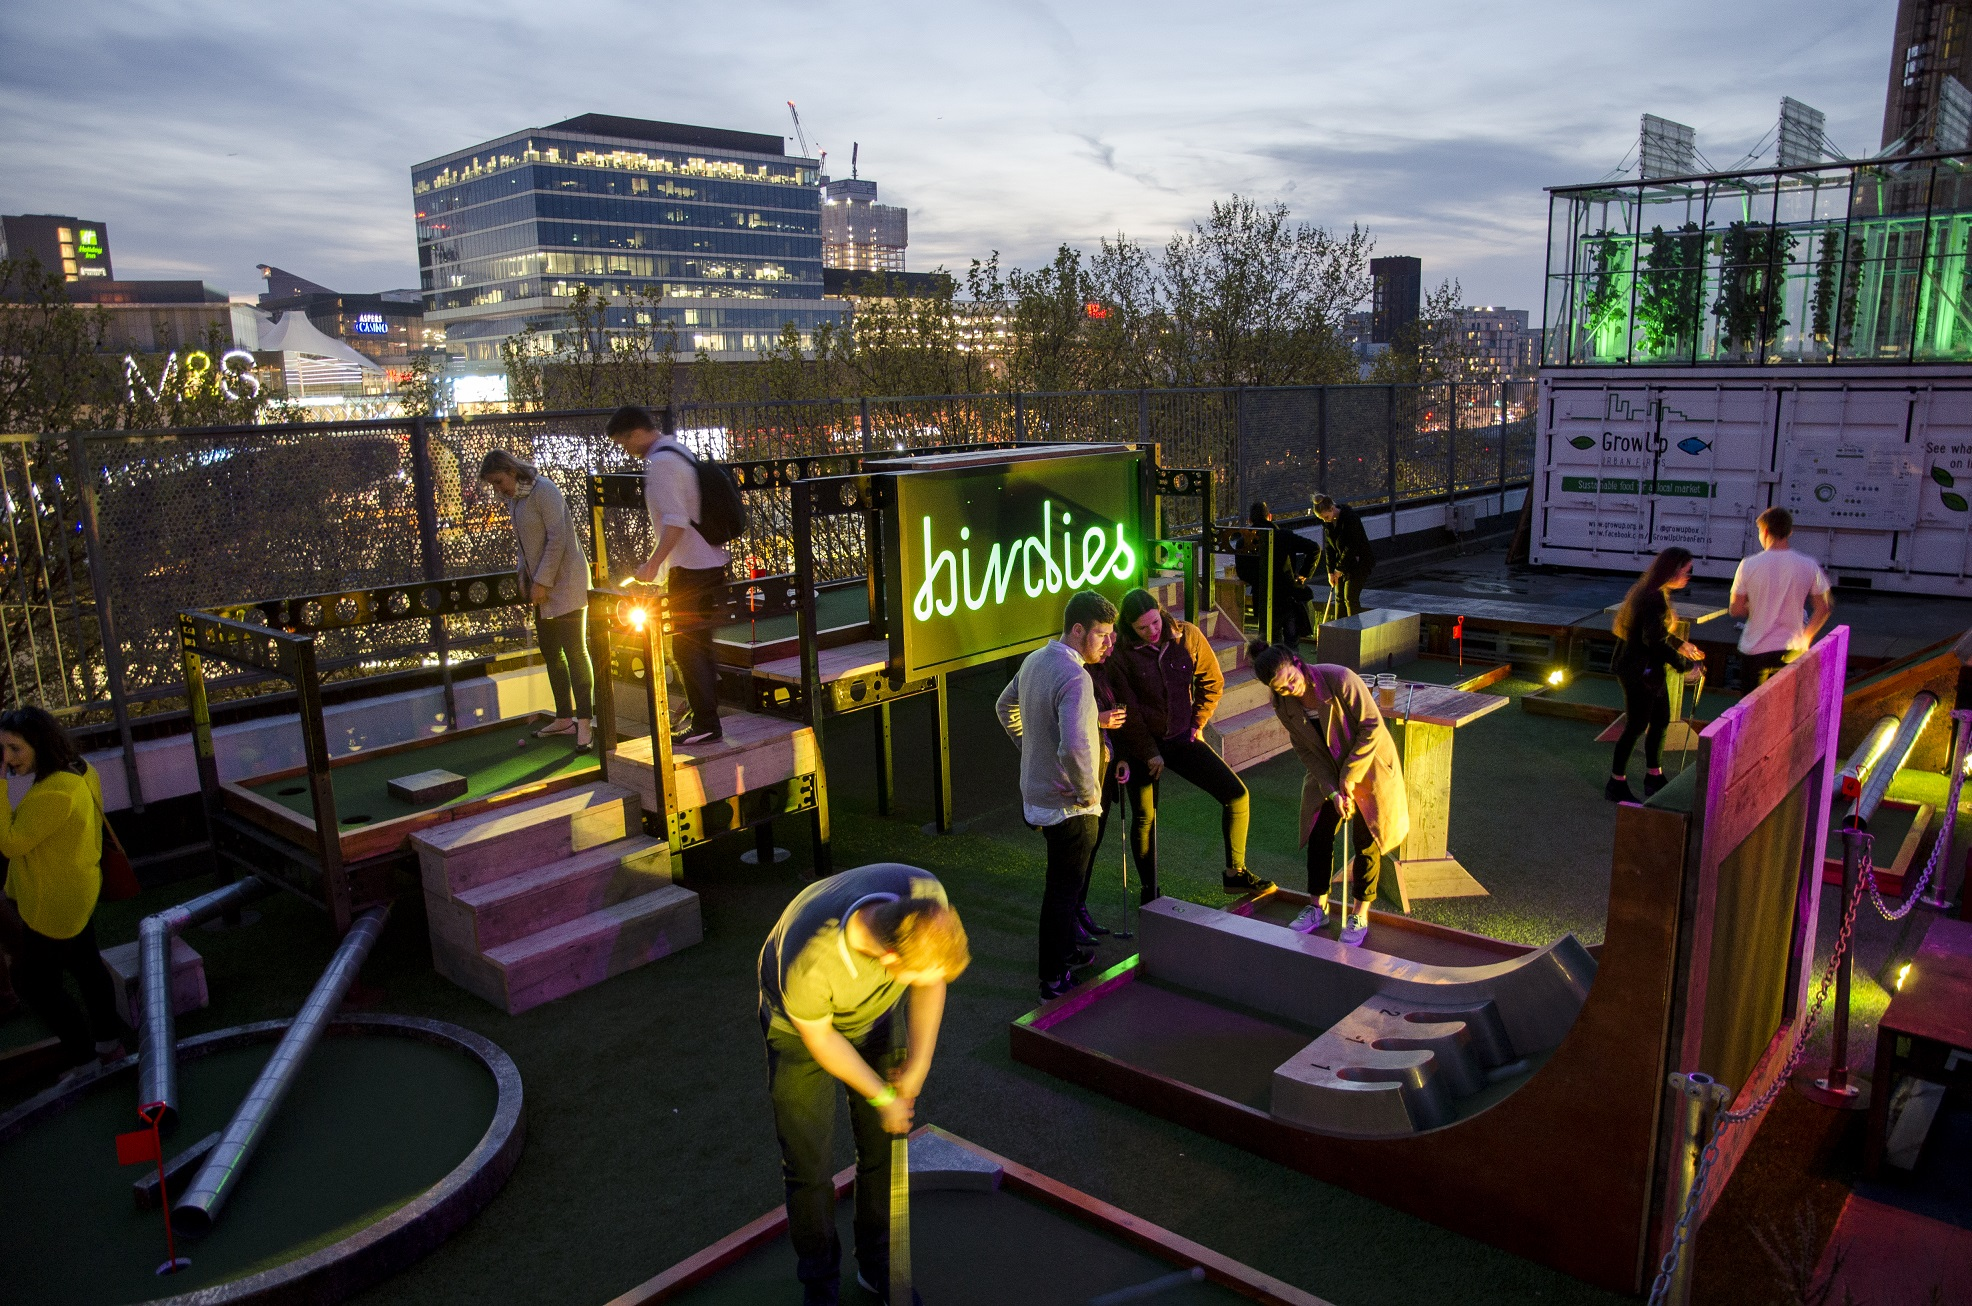 The Top Crazy Golf Venues In London